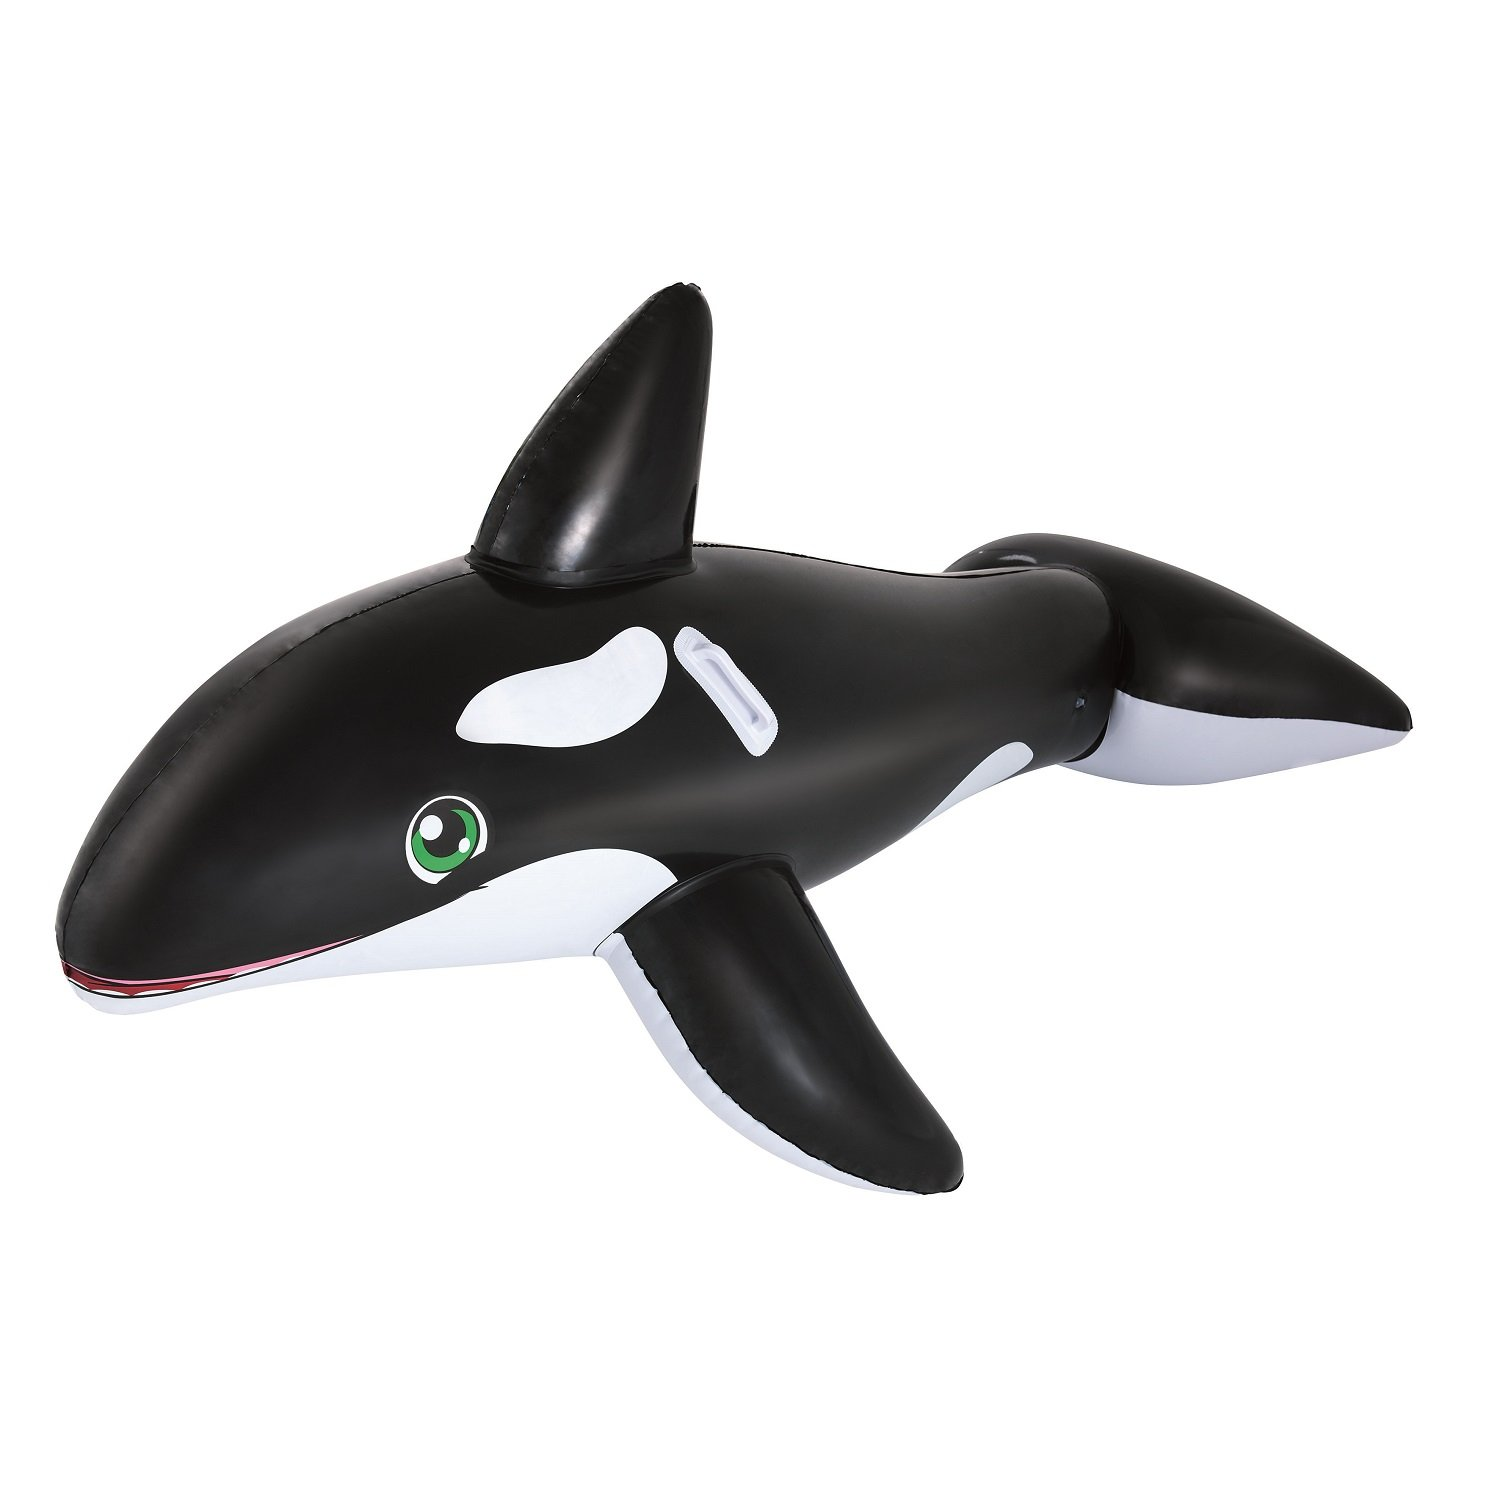 Amazon.com: H2OGO! Jumbo Whale Rider Inflatable Pool Float: Toys & Games